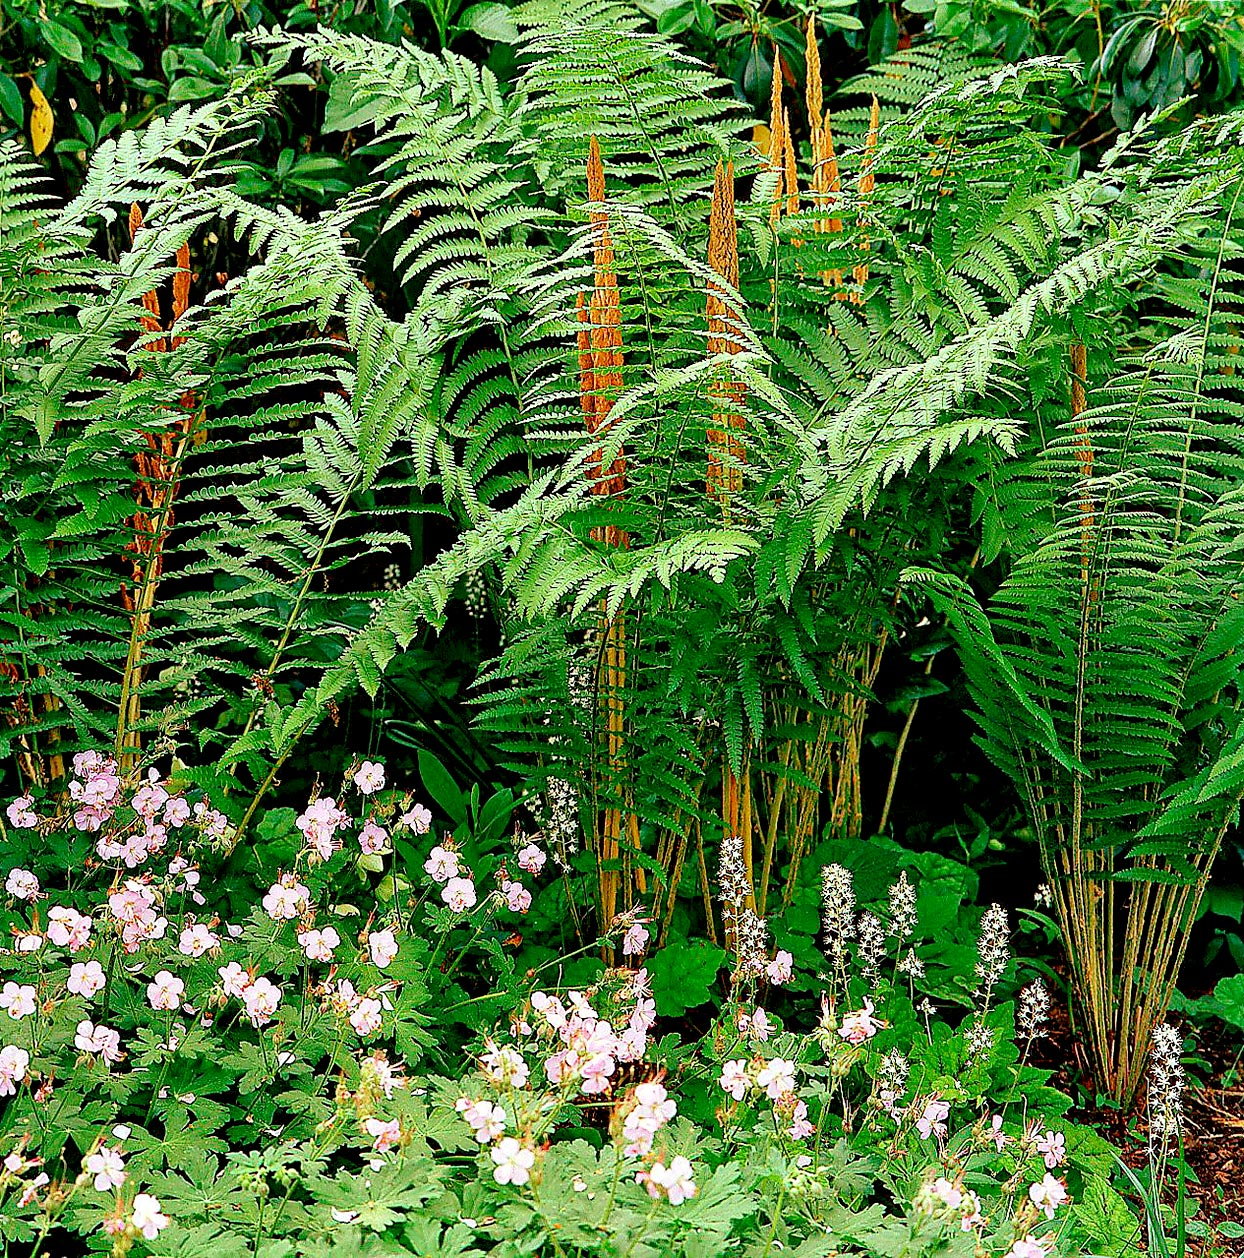 Cinnamon ferns and tiarella